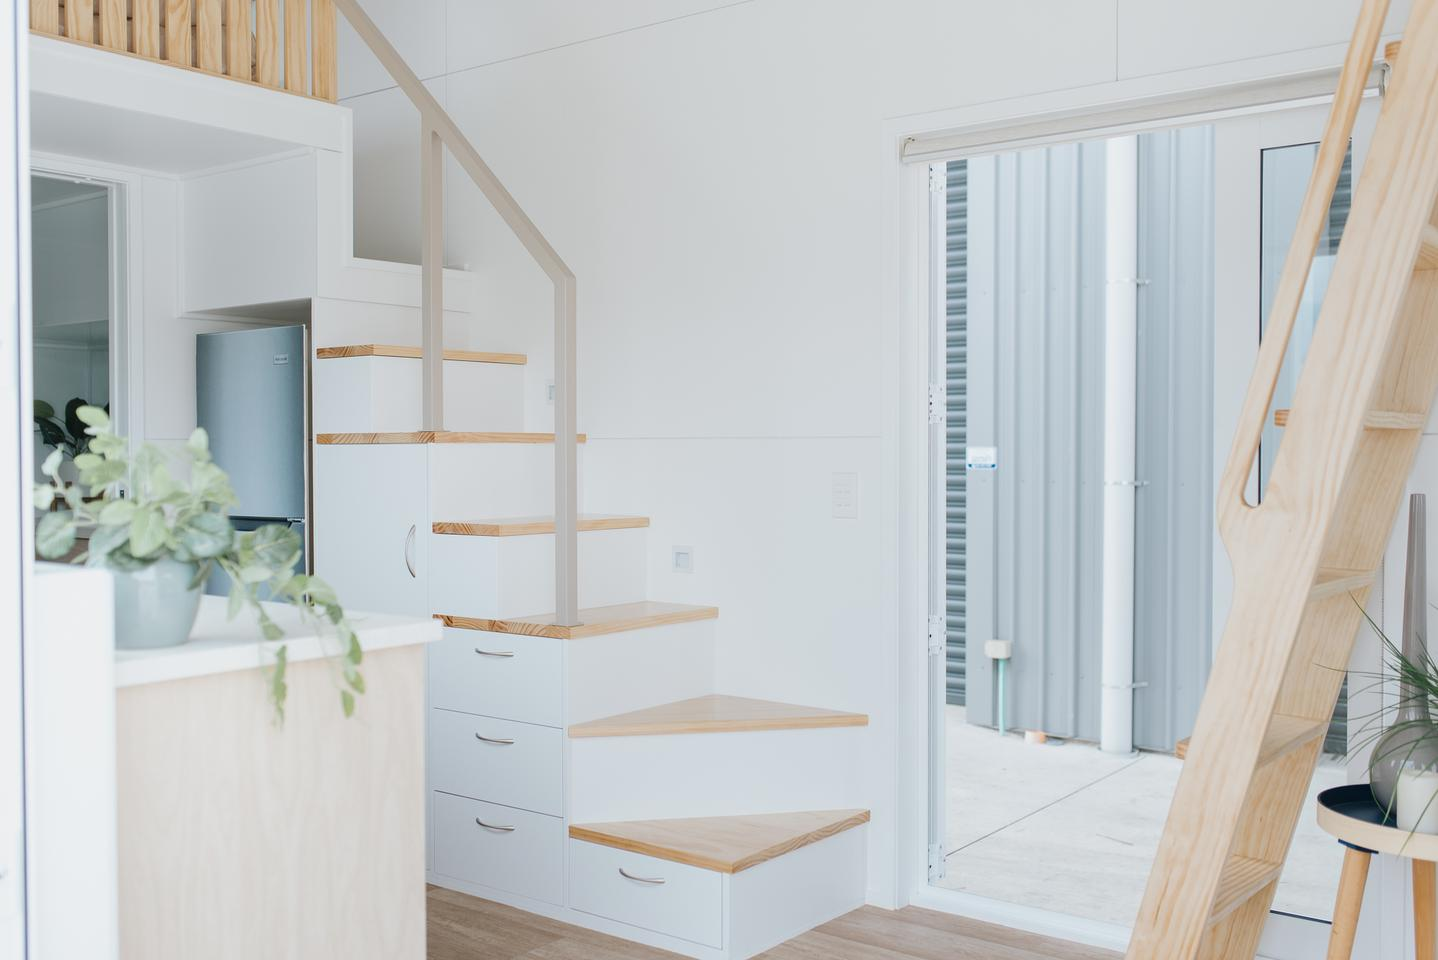 The Bay Tree Tiny House features a storage-integrated staircase